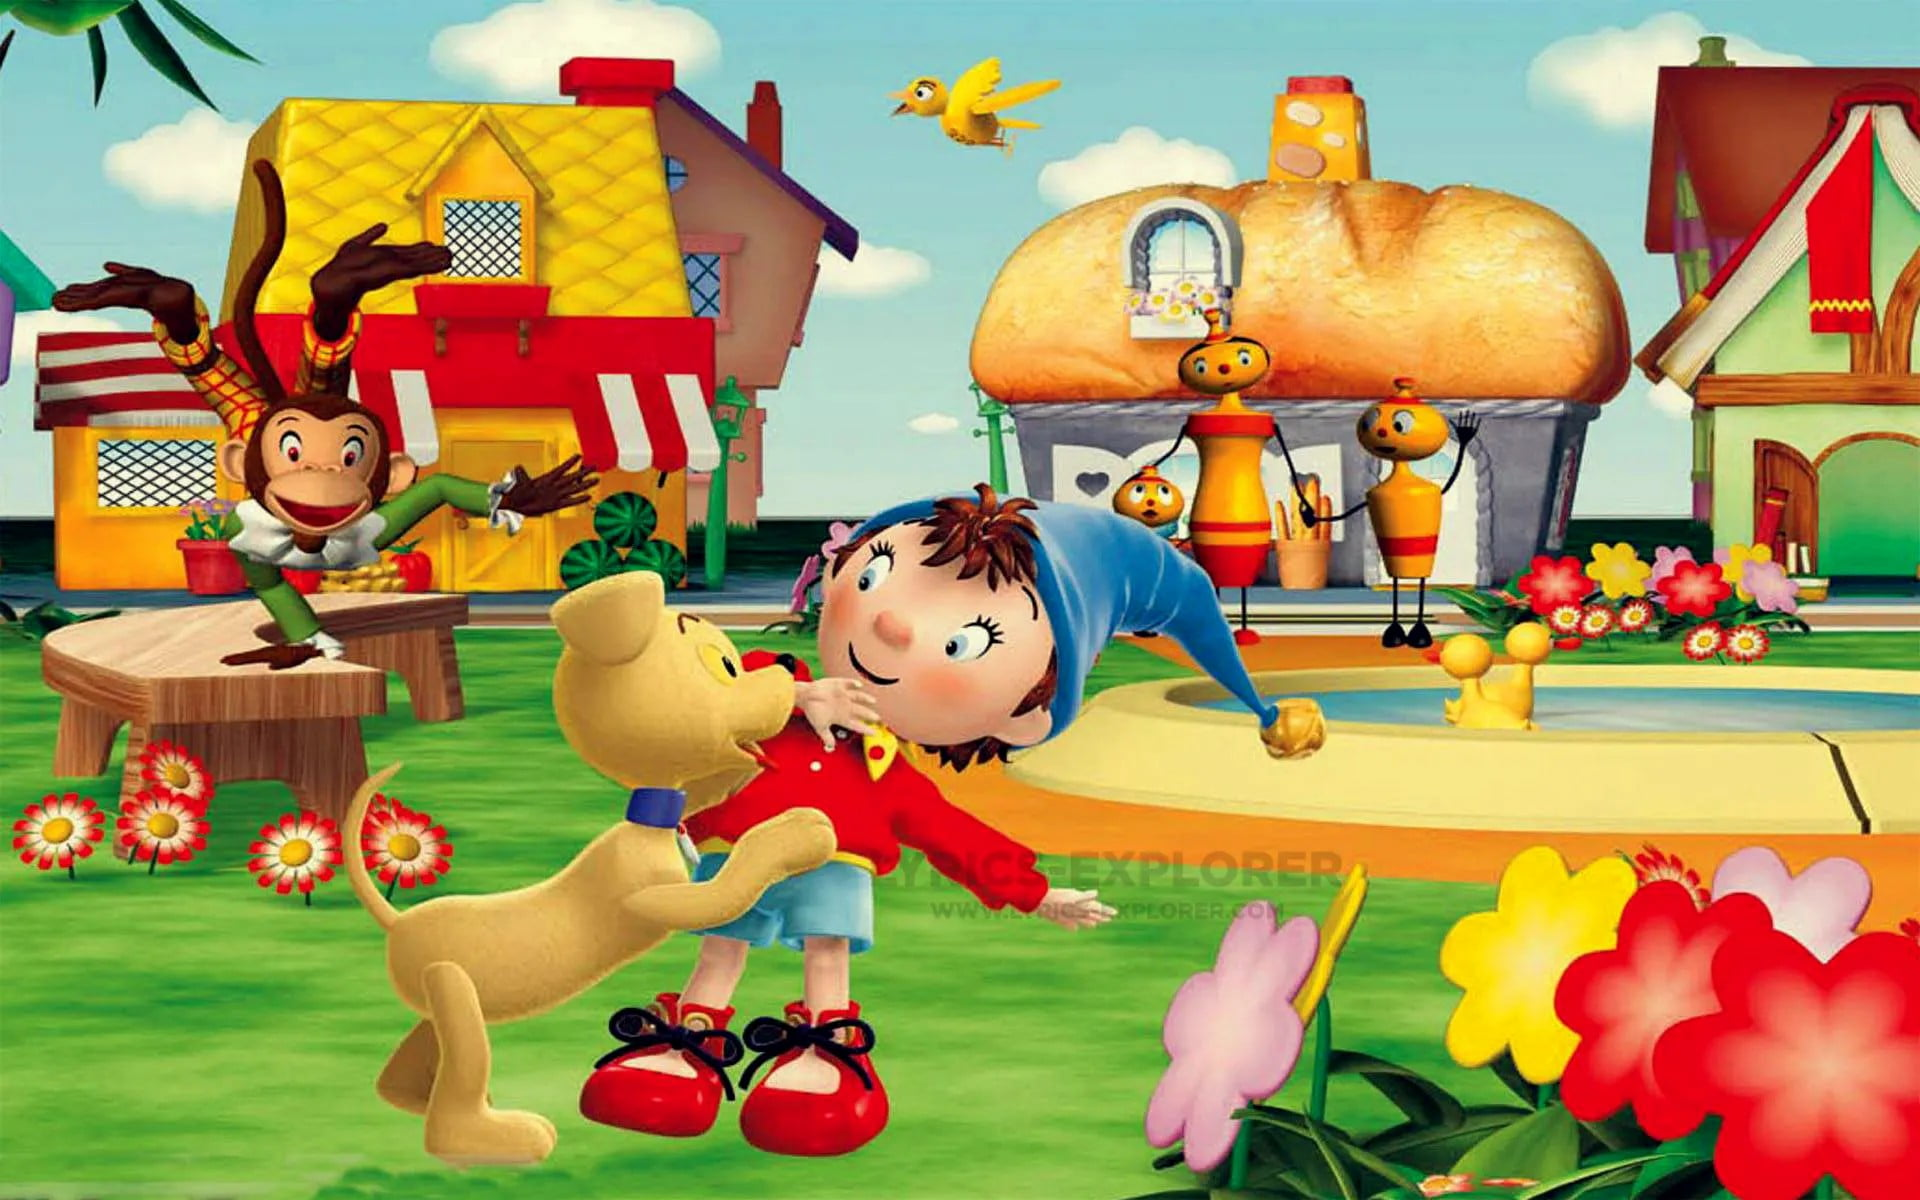 You are currently viewing Noddy Hindi theme song lyrics in English free